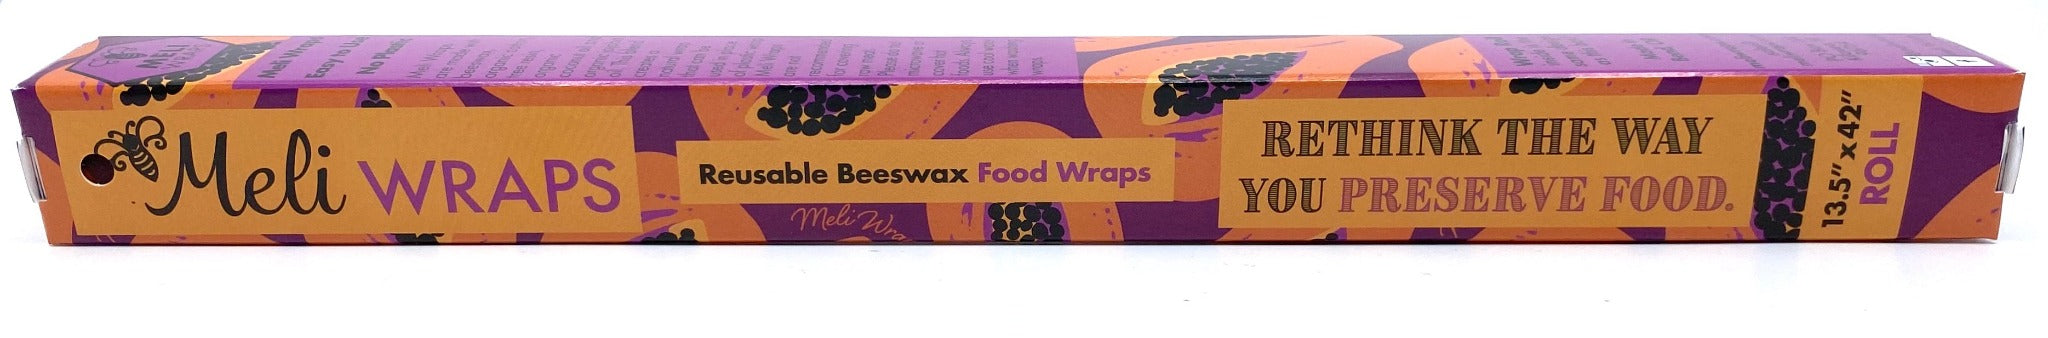 Meli Wraps Beeswax Wrap Bulk Roll - Purple Papaya Print